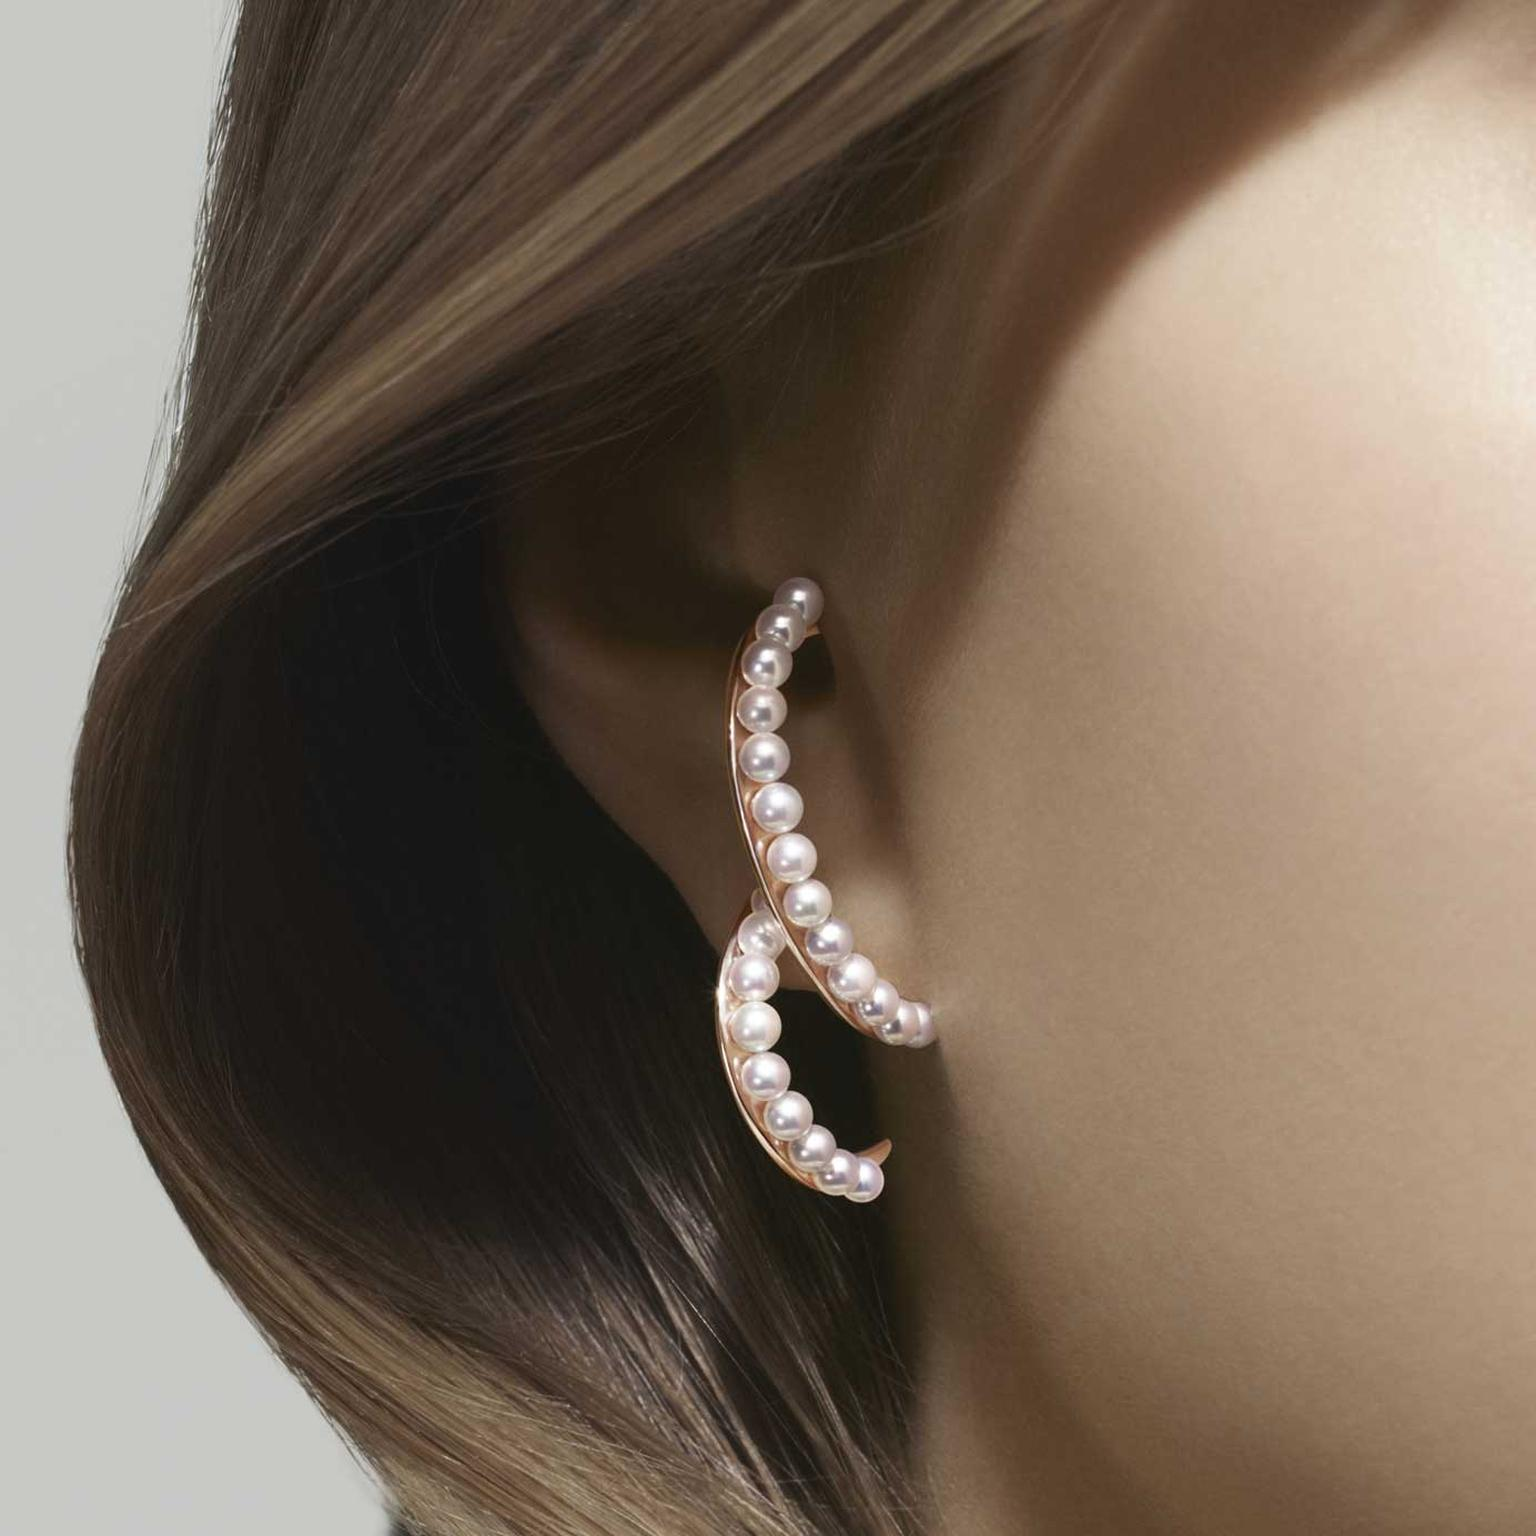 Tasaki Atelier Surge Akoya pearl and gold earrings on model